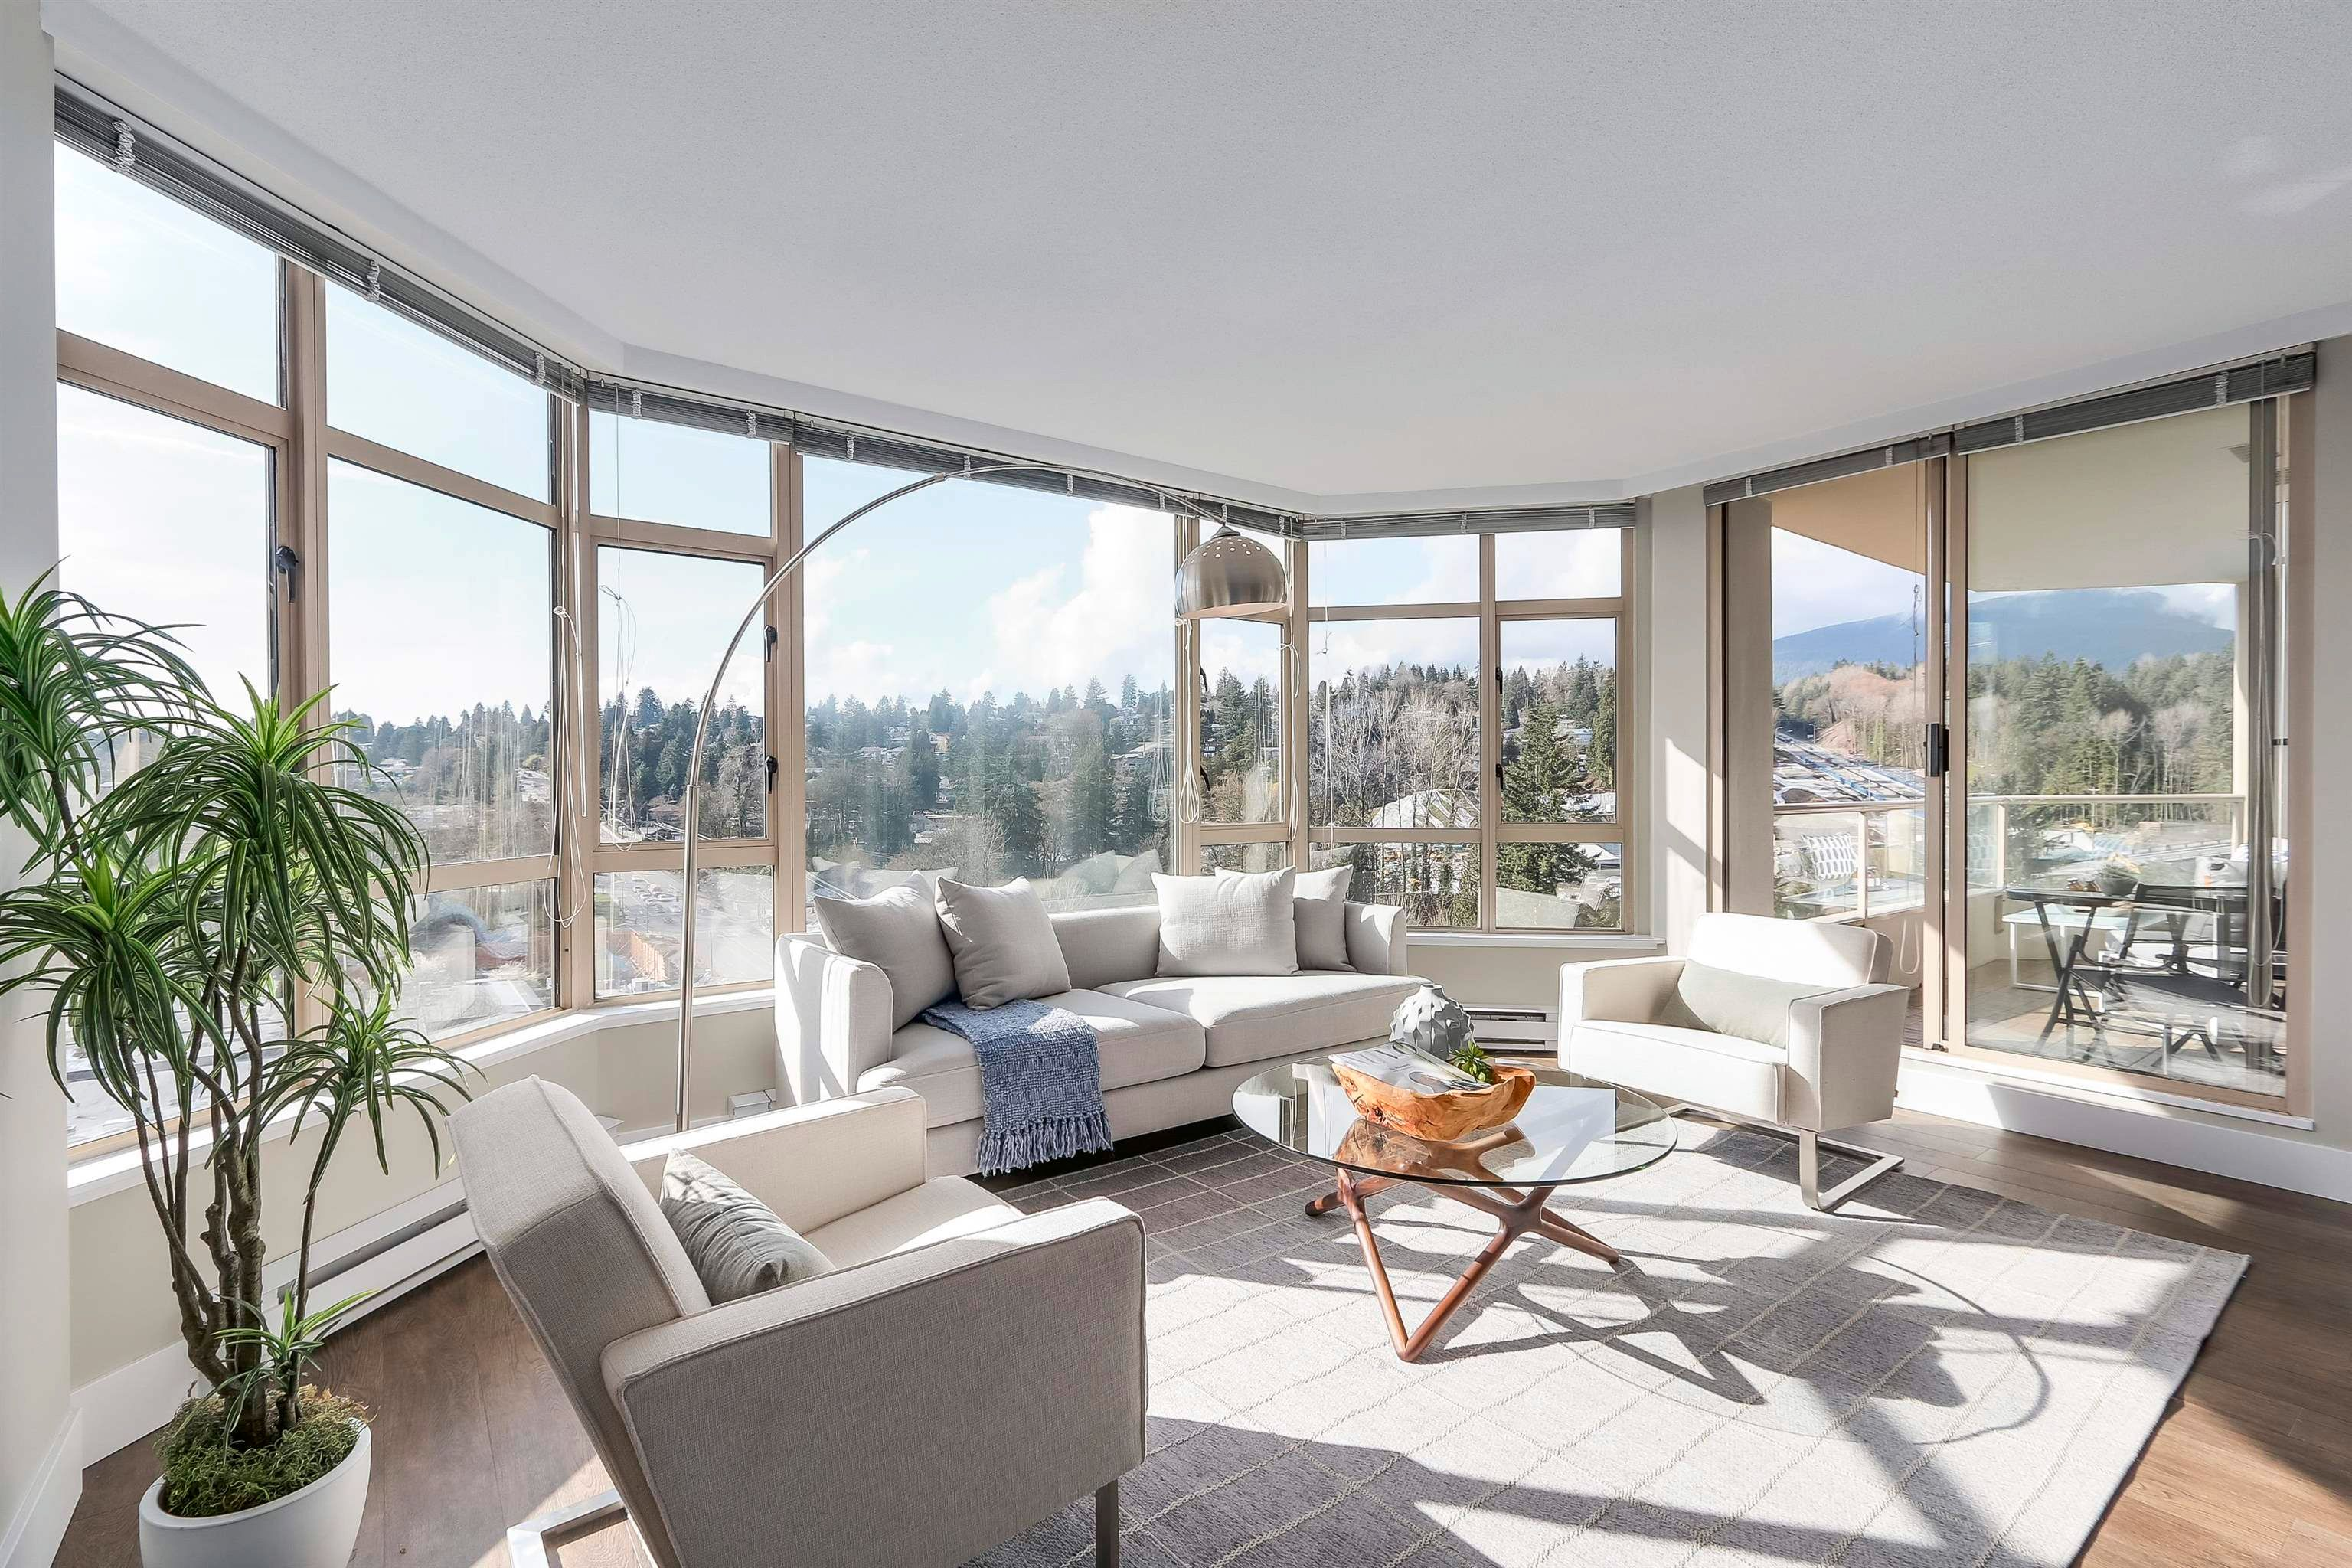 """Main Photo: 1405 1327 E KEITH Road in North Vancouver: Lynnmour Condo for sale in """"CARLTON AT THE CLUB"""" : MLS®# R2625739"""